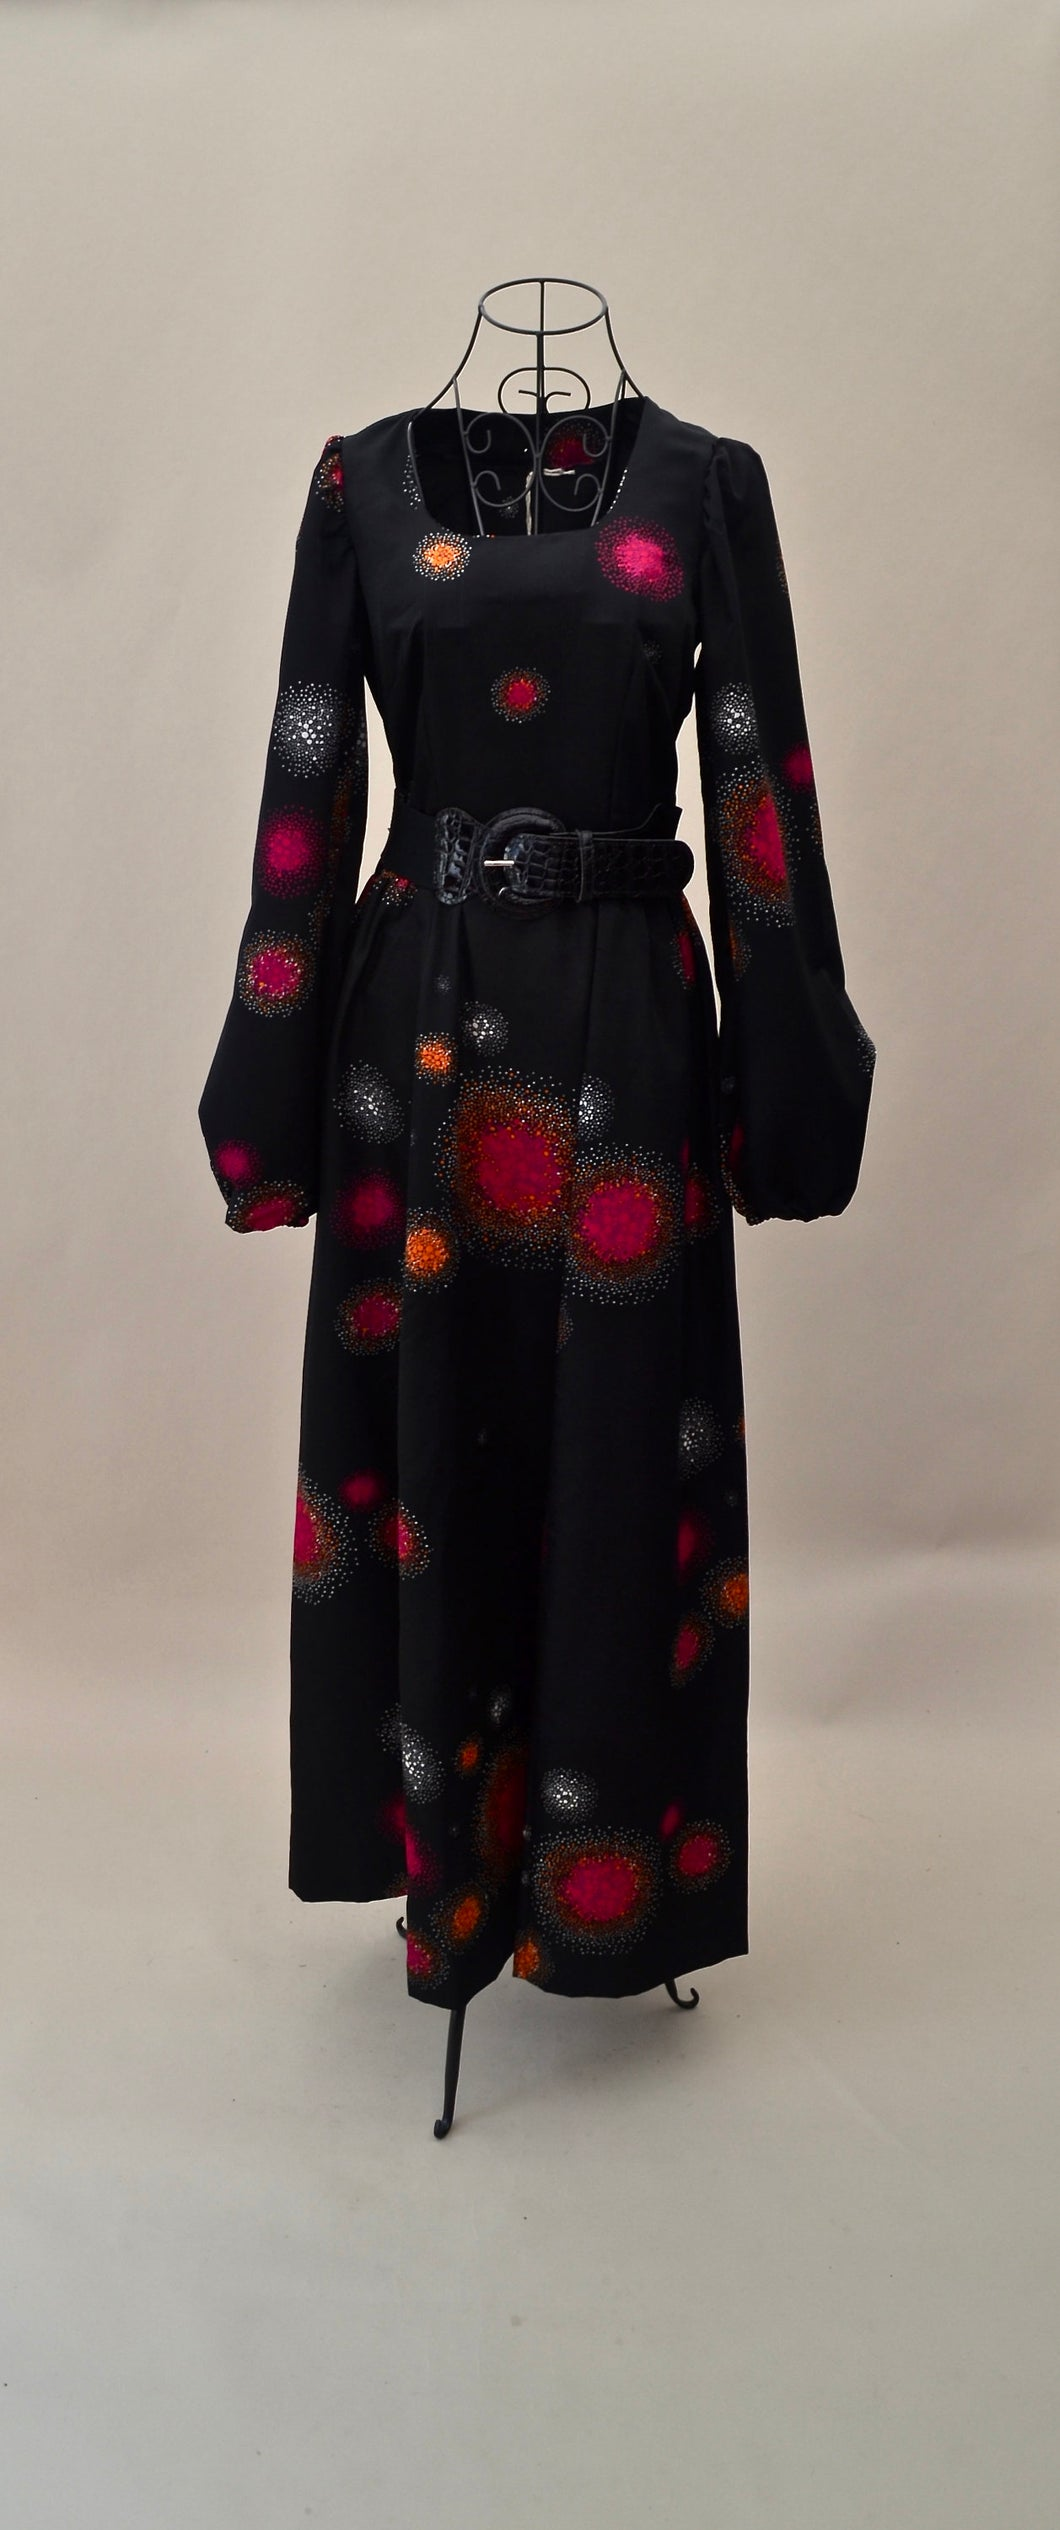 1970s black maxi dress with sleeves and funky vibrant pattern, UK Est size 6/8